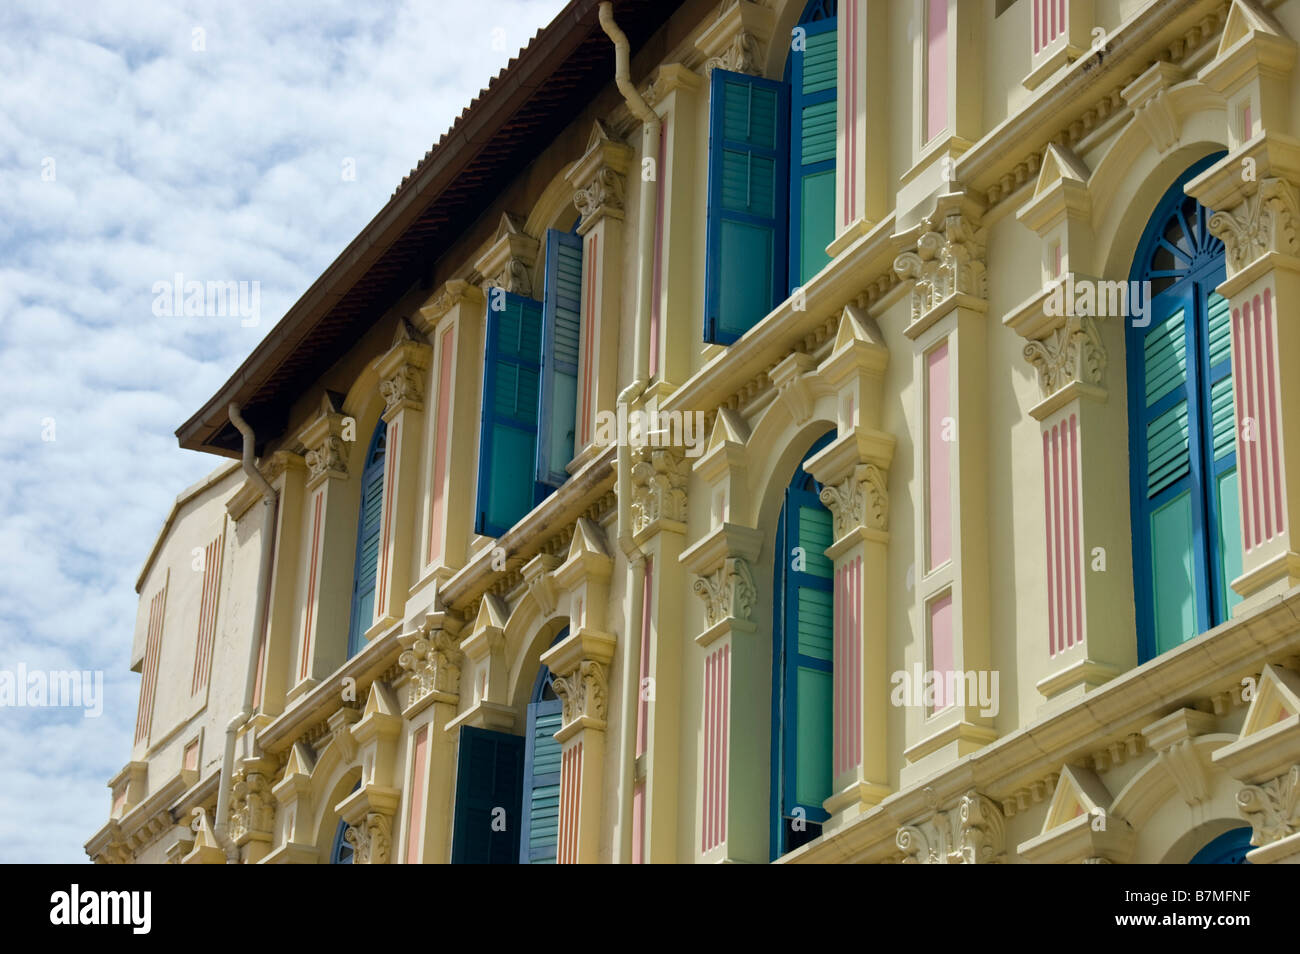 Renovated old shophouse in Singapore's Chinatown - Stock Image